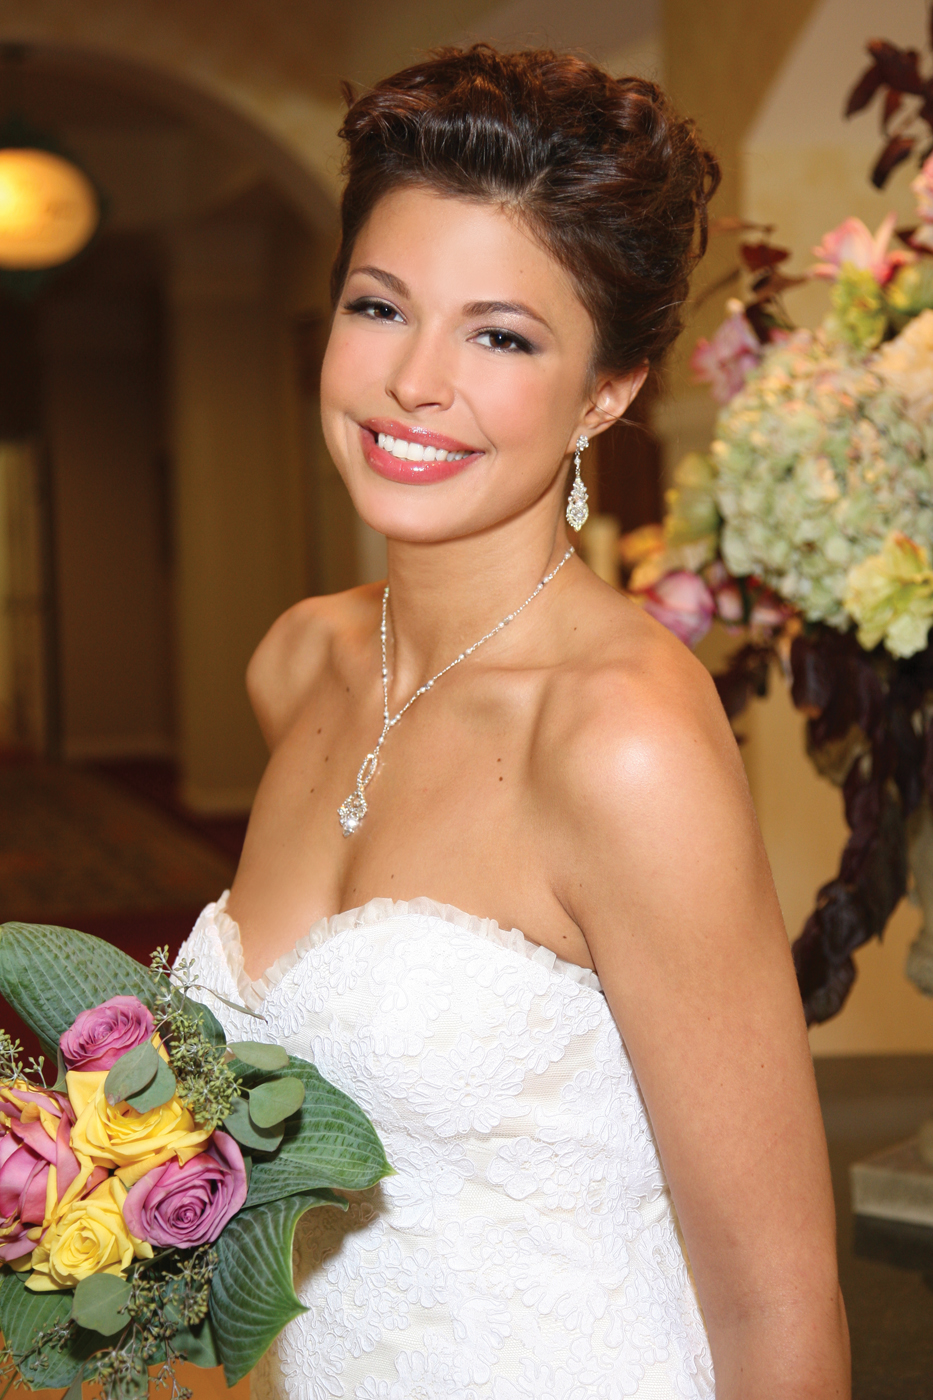 Glamorous Bridal Makeup From Start To Finish : Bridal Beauty Tips from BridalGal Multicultural Beauty